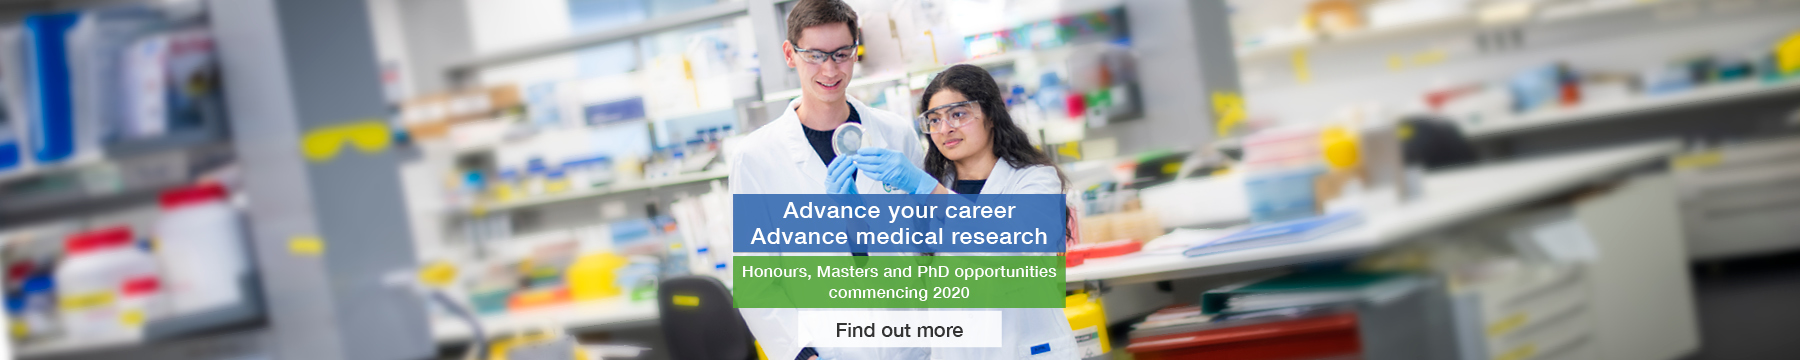 Opportunities for Honours, Masters and PhD study